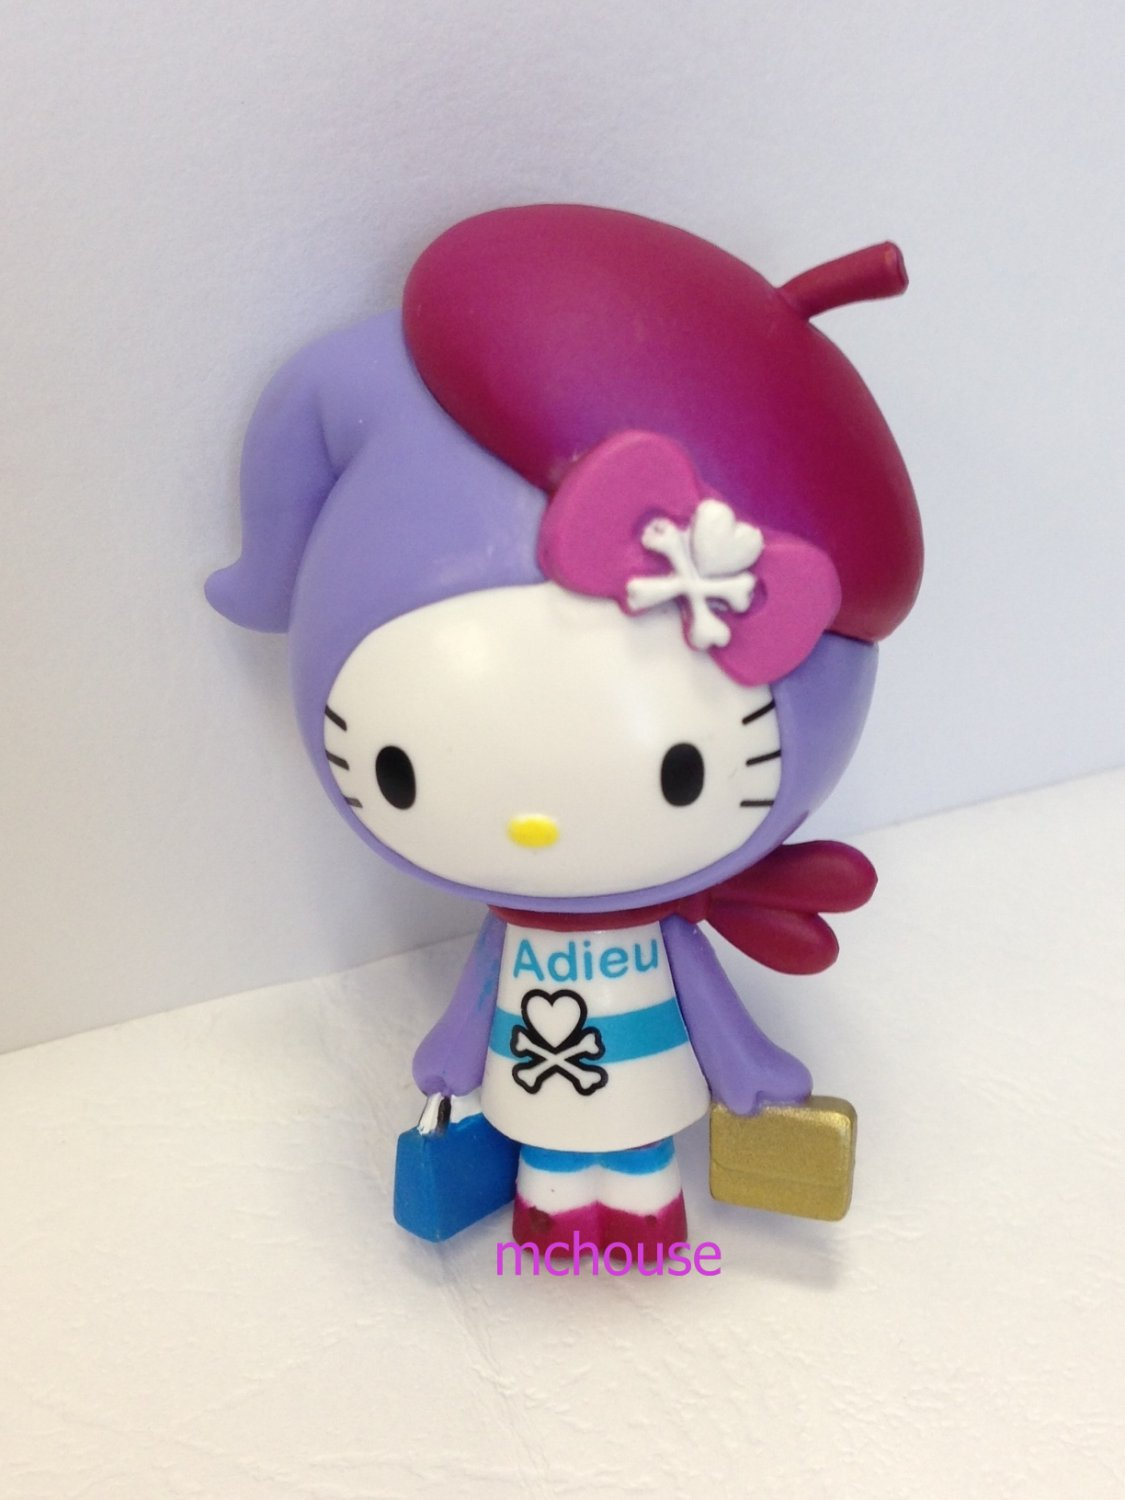 7-11 HK Sanrio Hello Kitty Tokidoki Wonderland Figurine Adieu Kitty